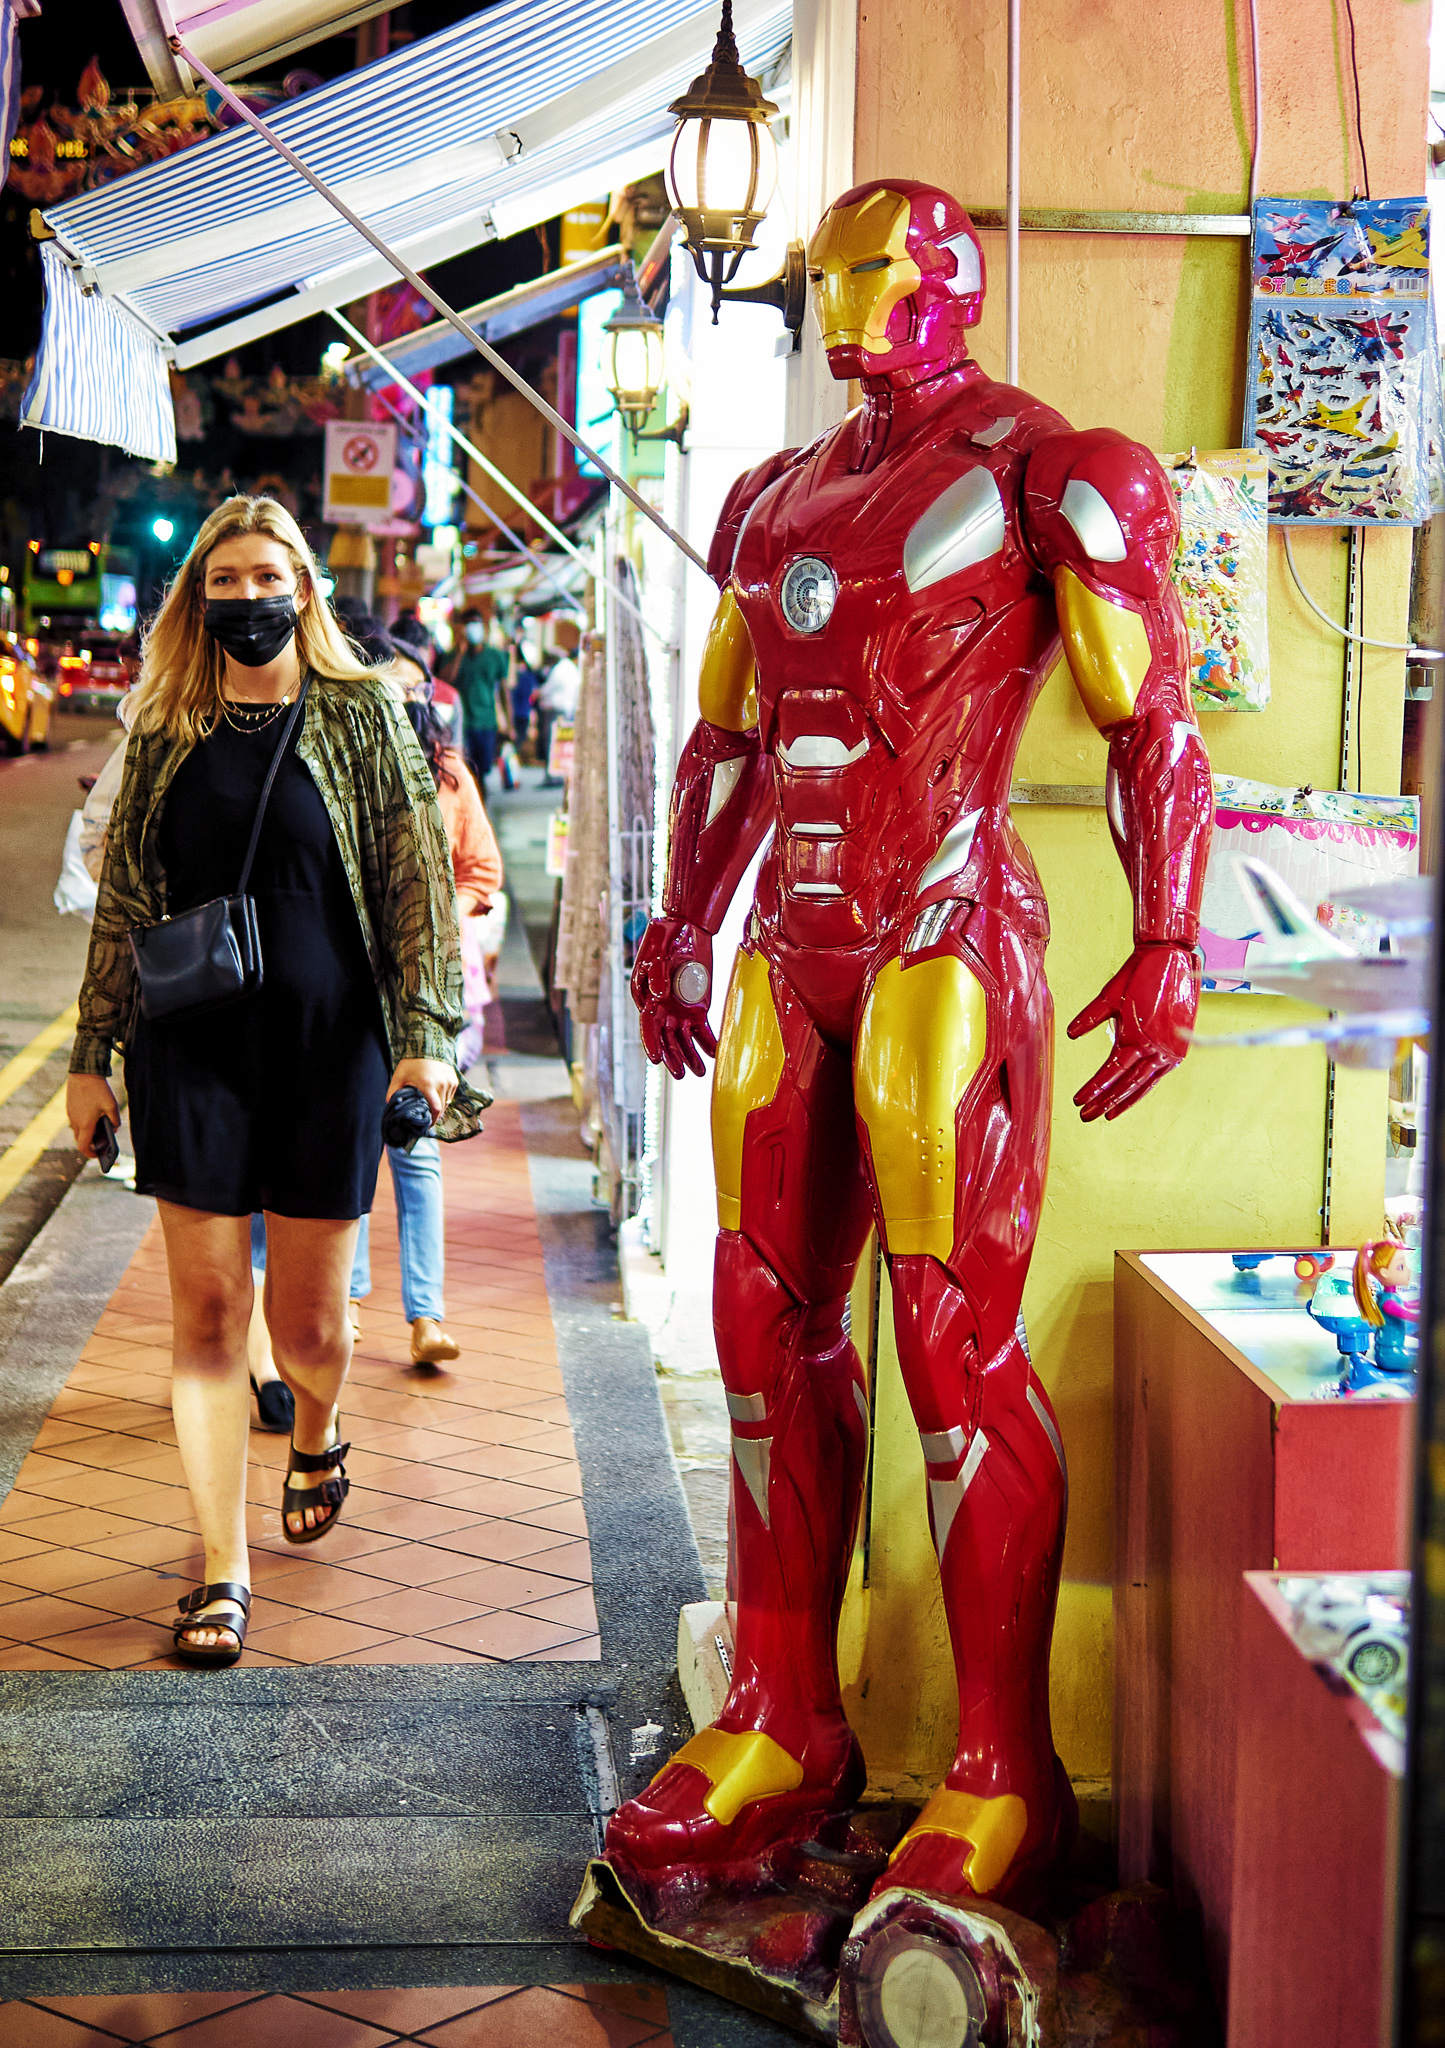 Iron Man mannequin on display in front of a toy shop at Little India, Singapore